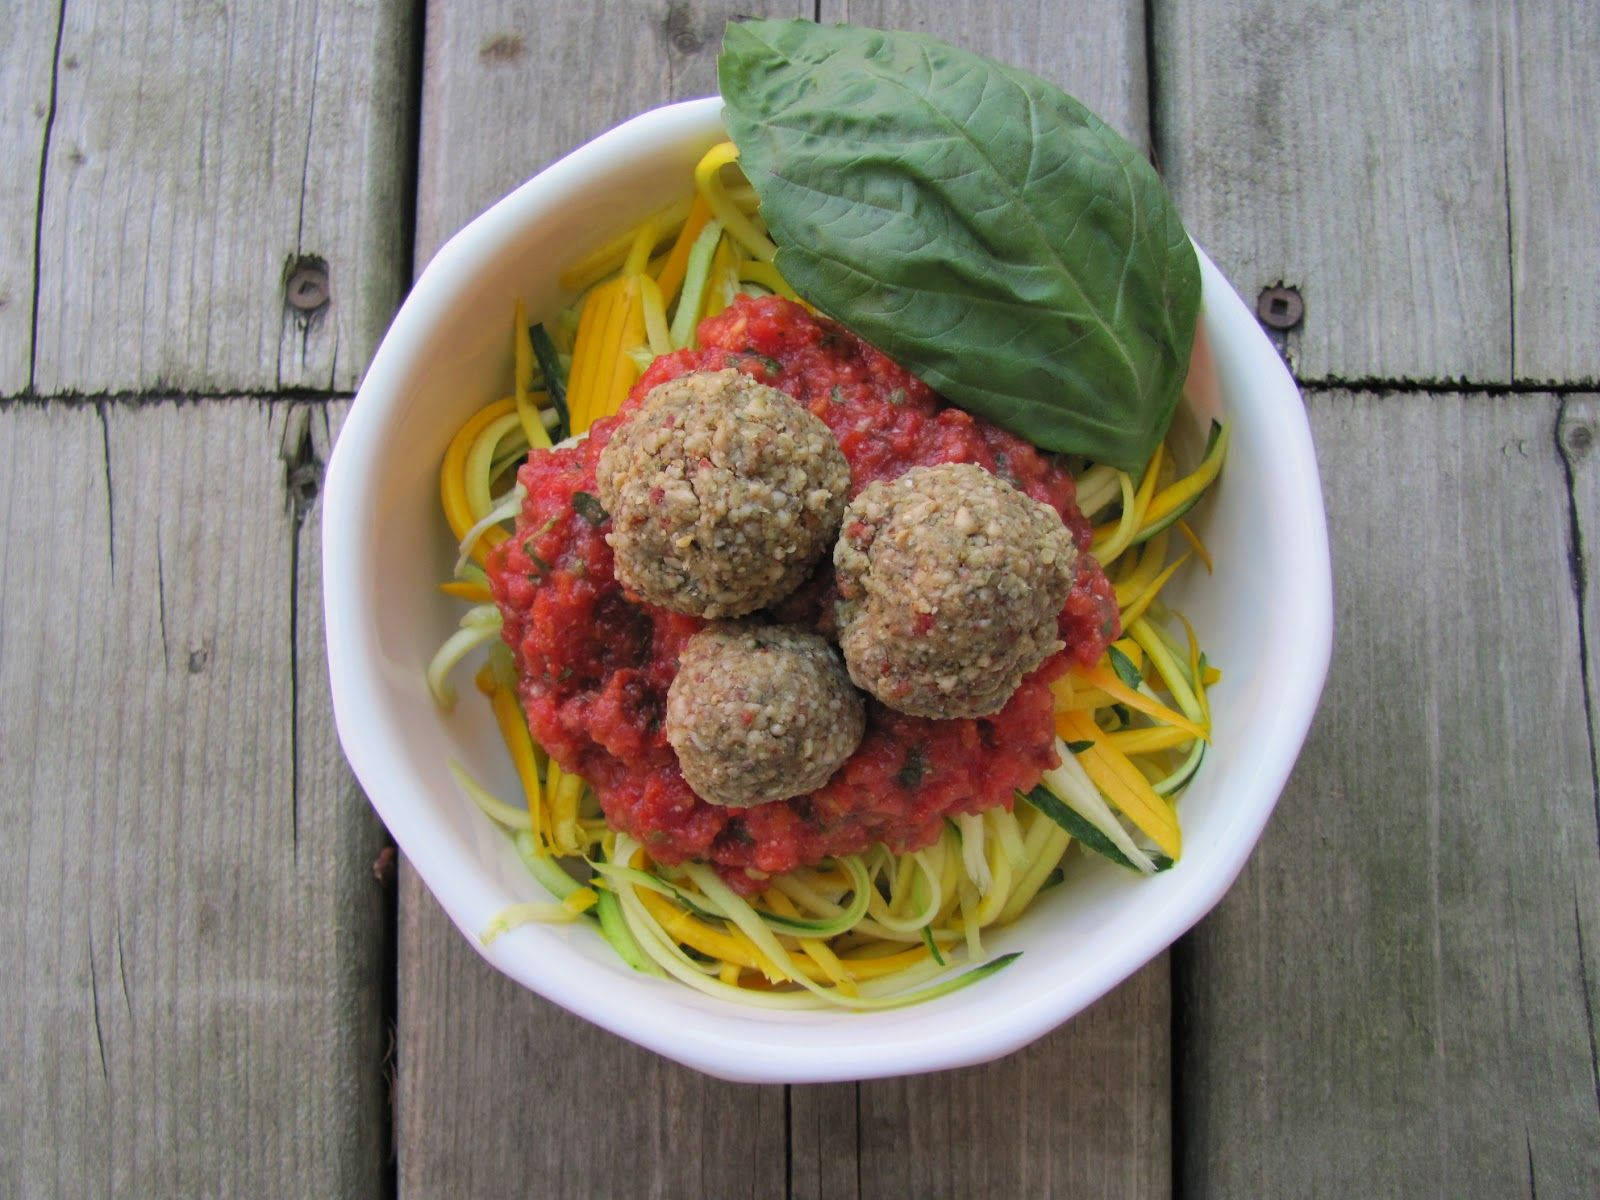 Savoury RAW No-Meat-Balls    Ingredients  1 C raw sunflower seeds  ½ C + 1 T raw almond butter  4 sundried tomatoes, soaked and chopped  3 T fresh basil, shredded  1 T nutritional yeast  1 clove of garlic  1 tsp dried thyme   1 tsp dried oregano  1 tsp olive oil  Pinch cumin  sea salt to taste